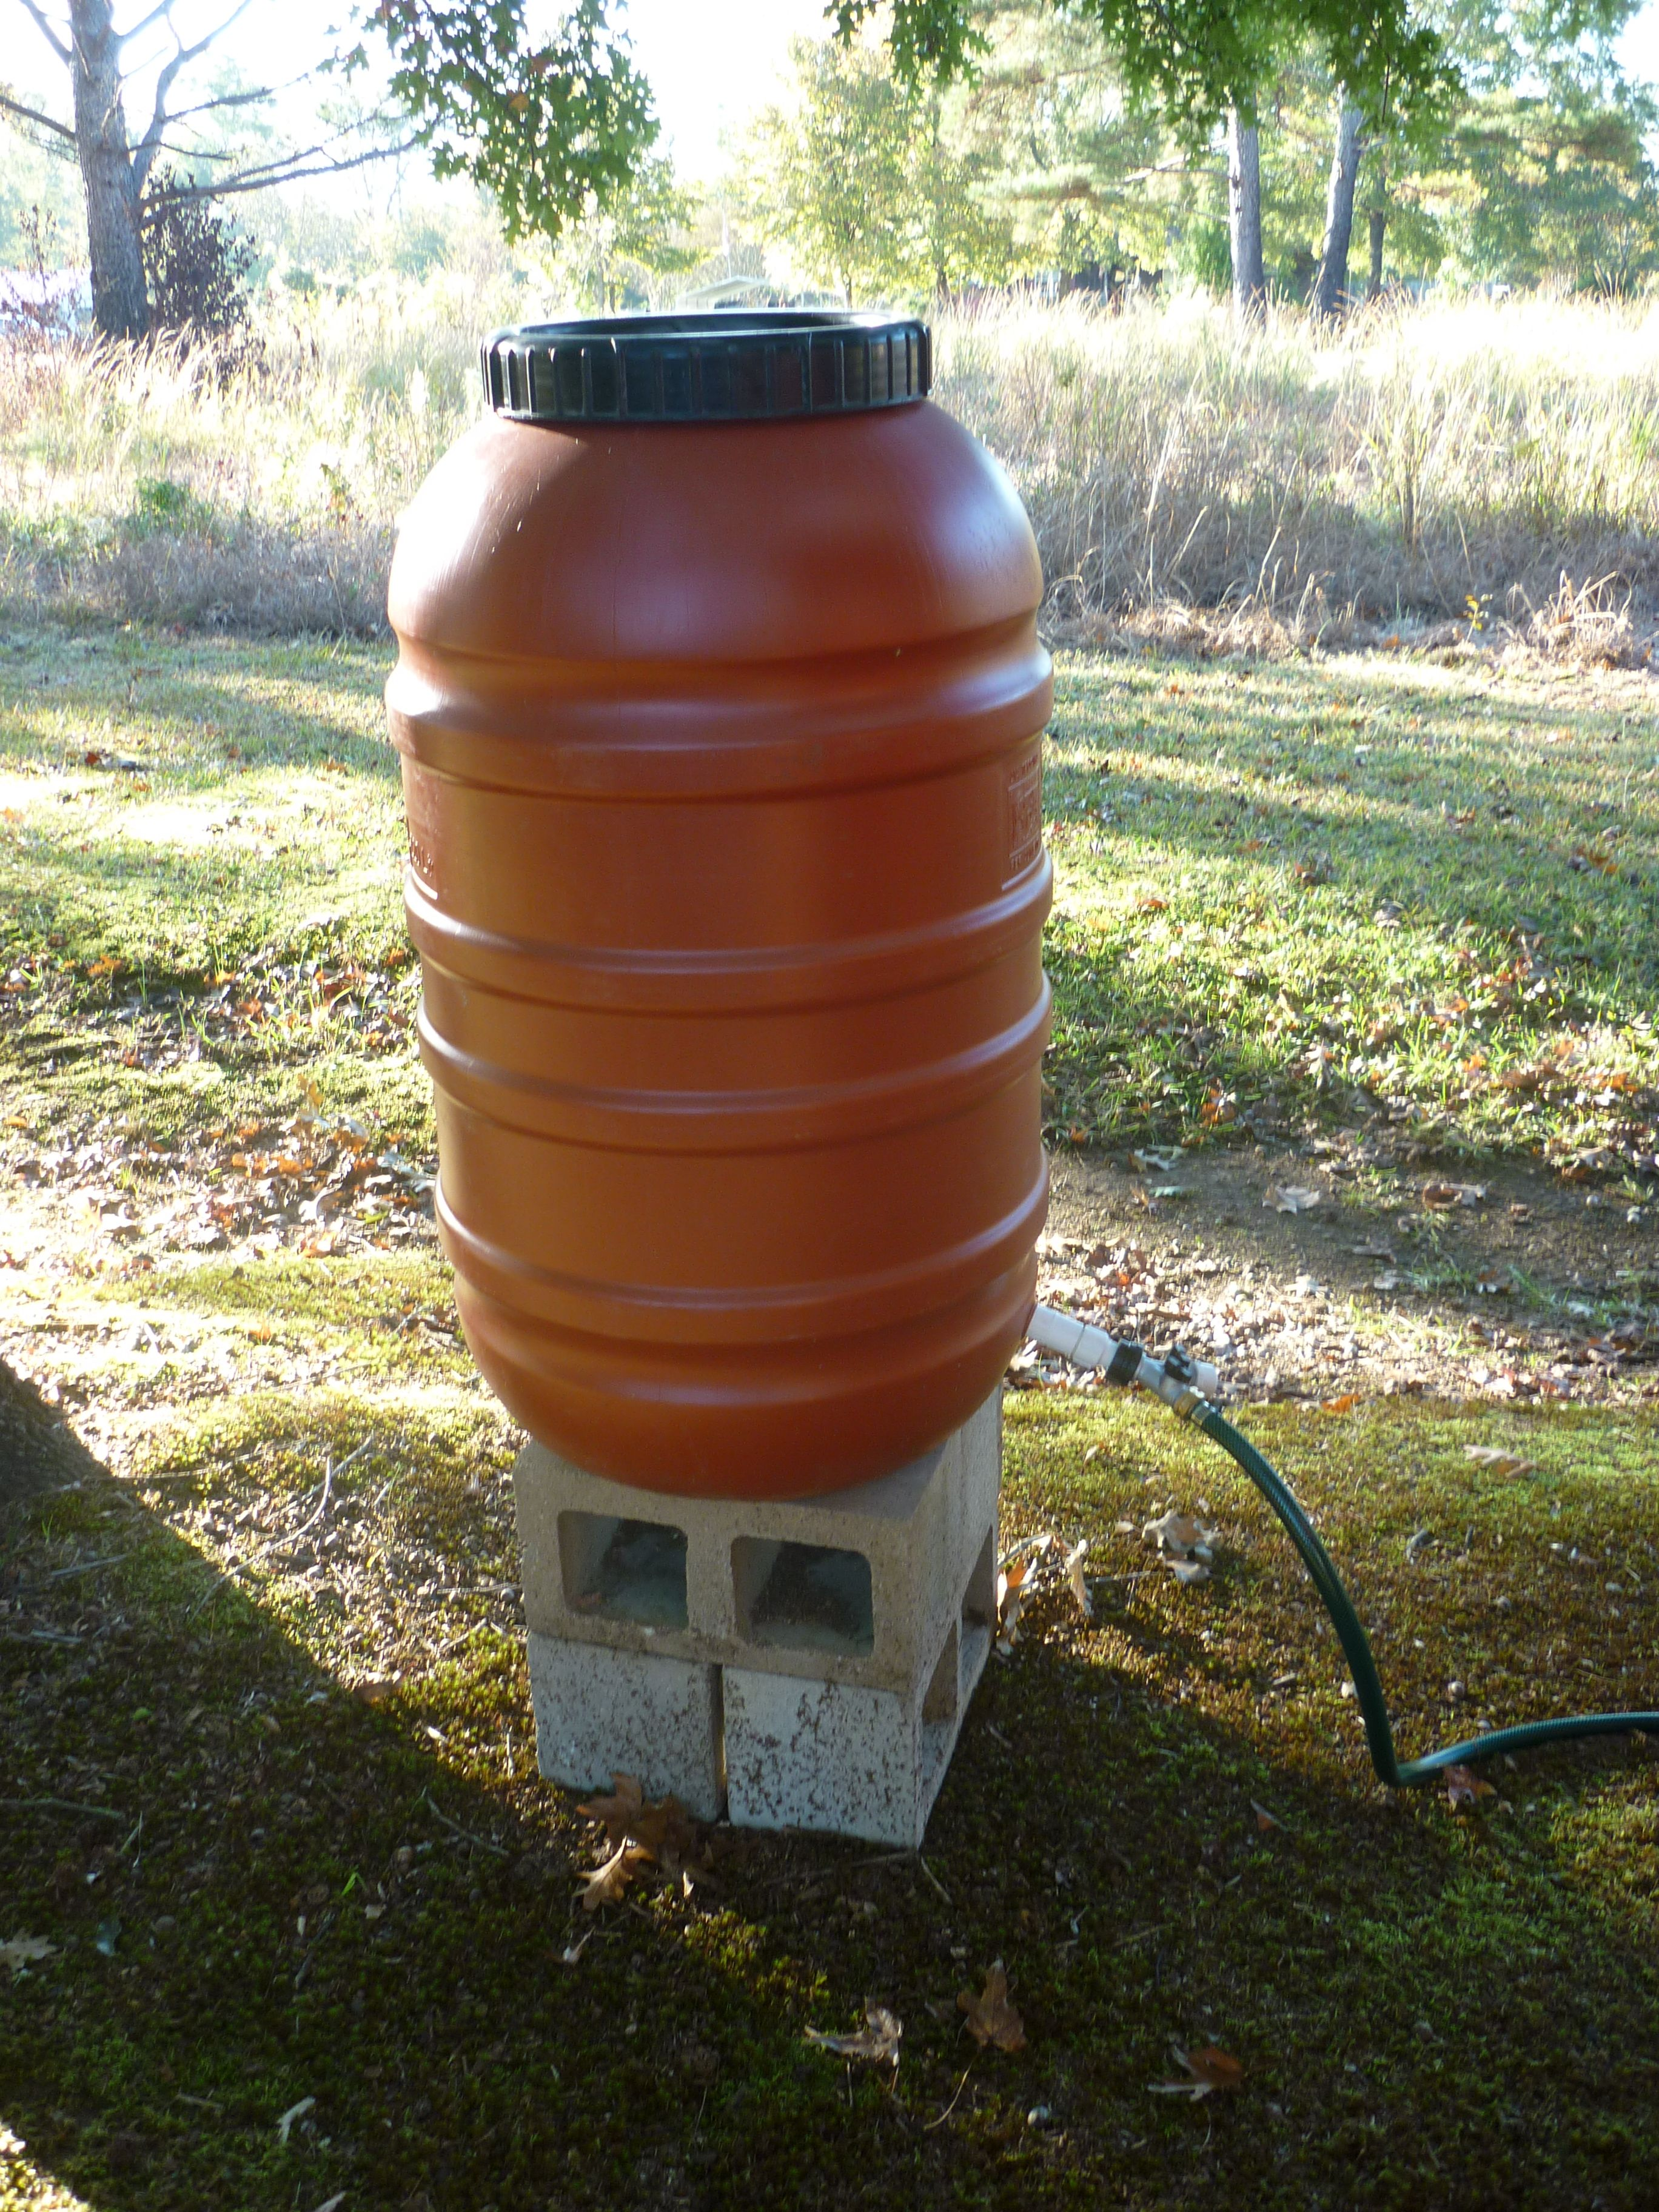 Another photo of the water barrel.  It has a screw-on lid to keep out dirt and debris.